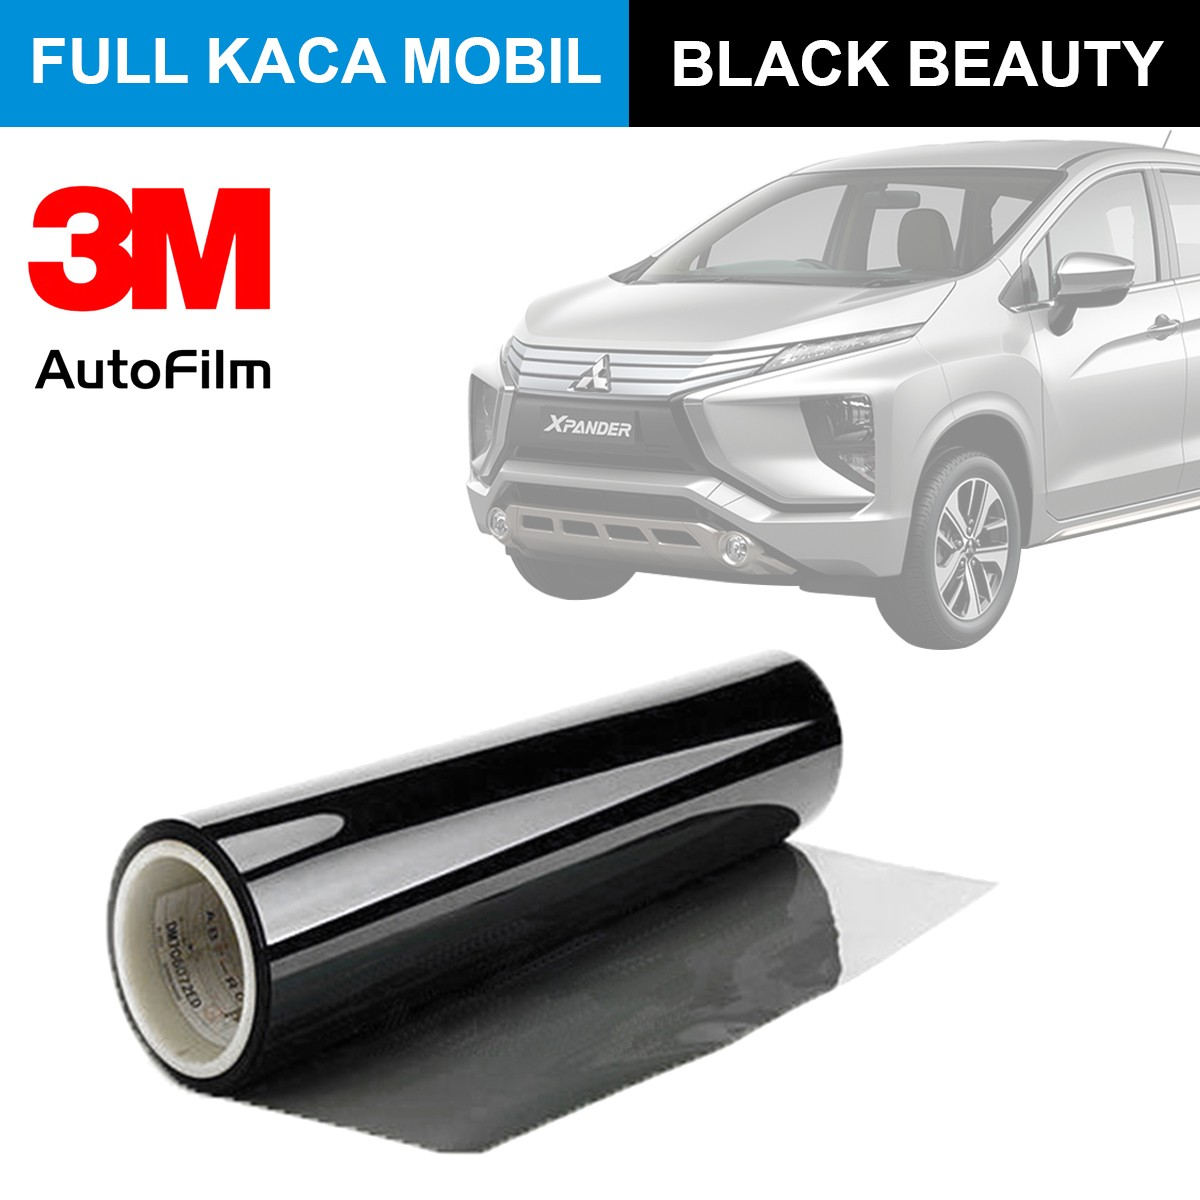 KACA FILM 3M BLACK BEAUTY - (MEDIUM CAR) FULL KACA